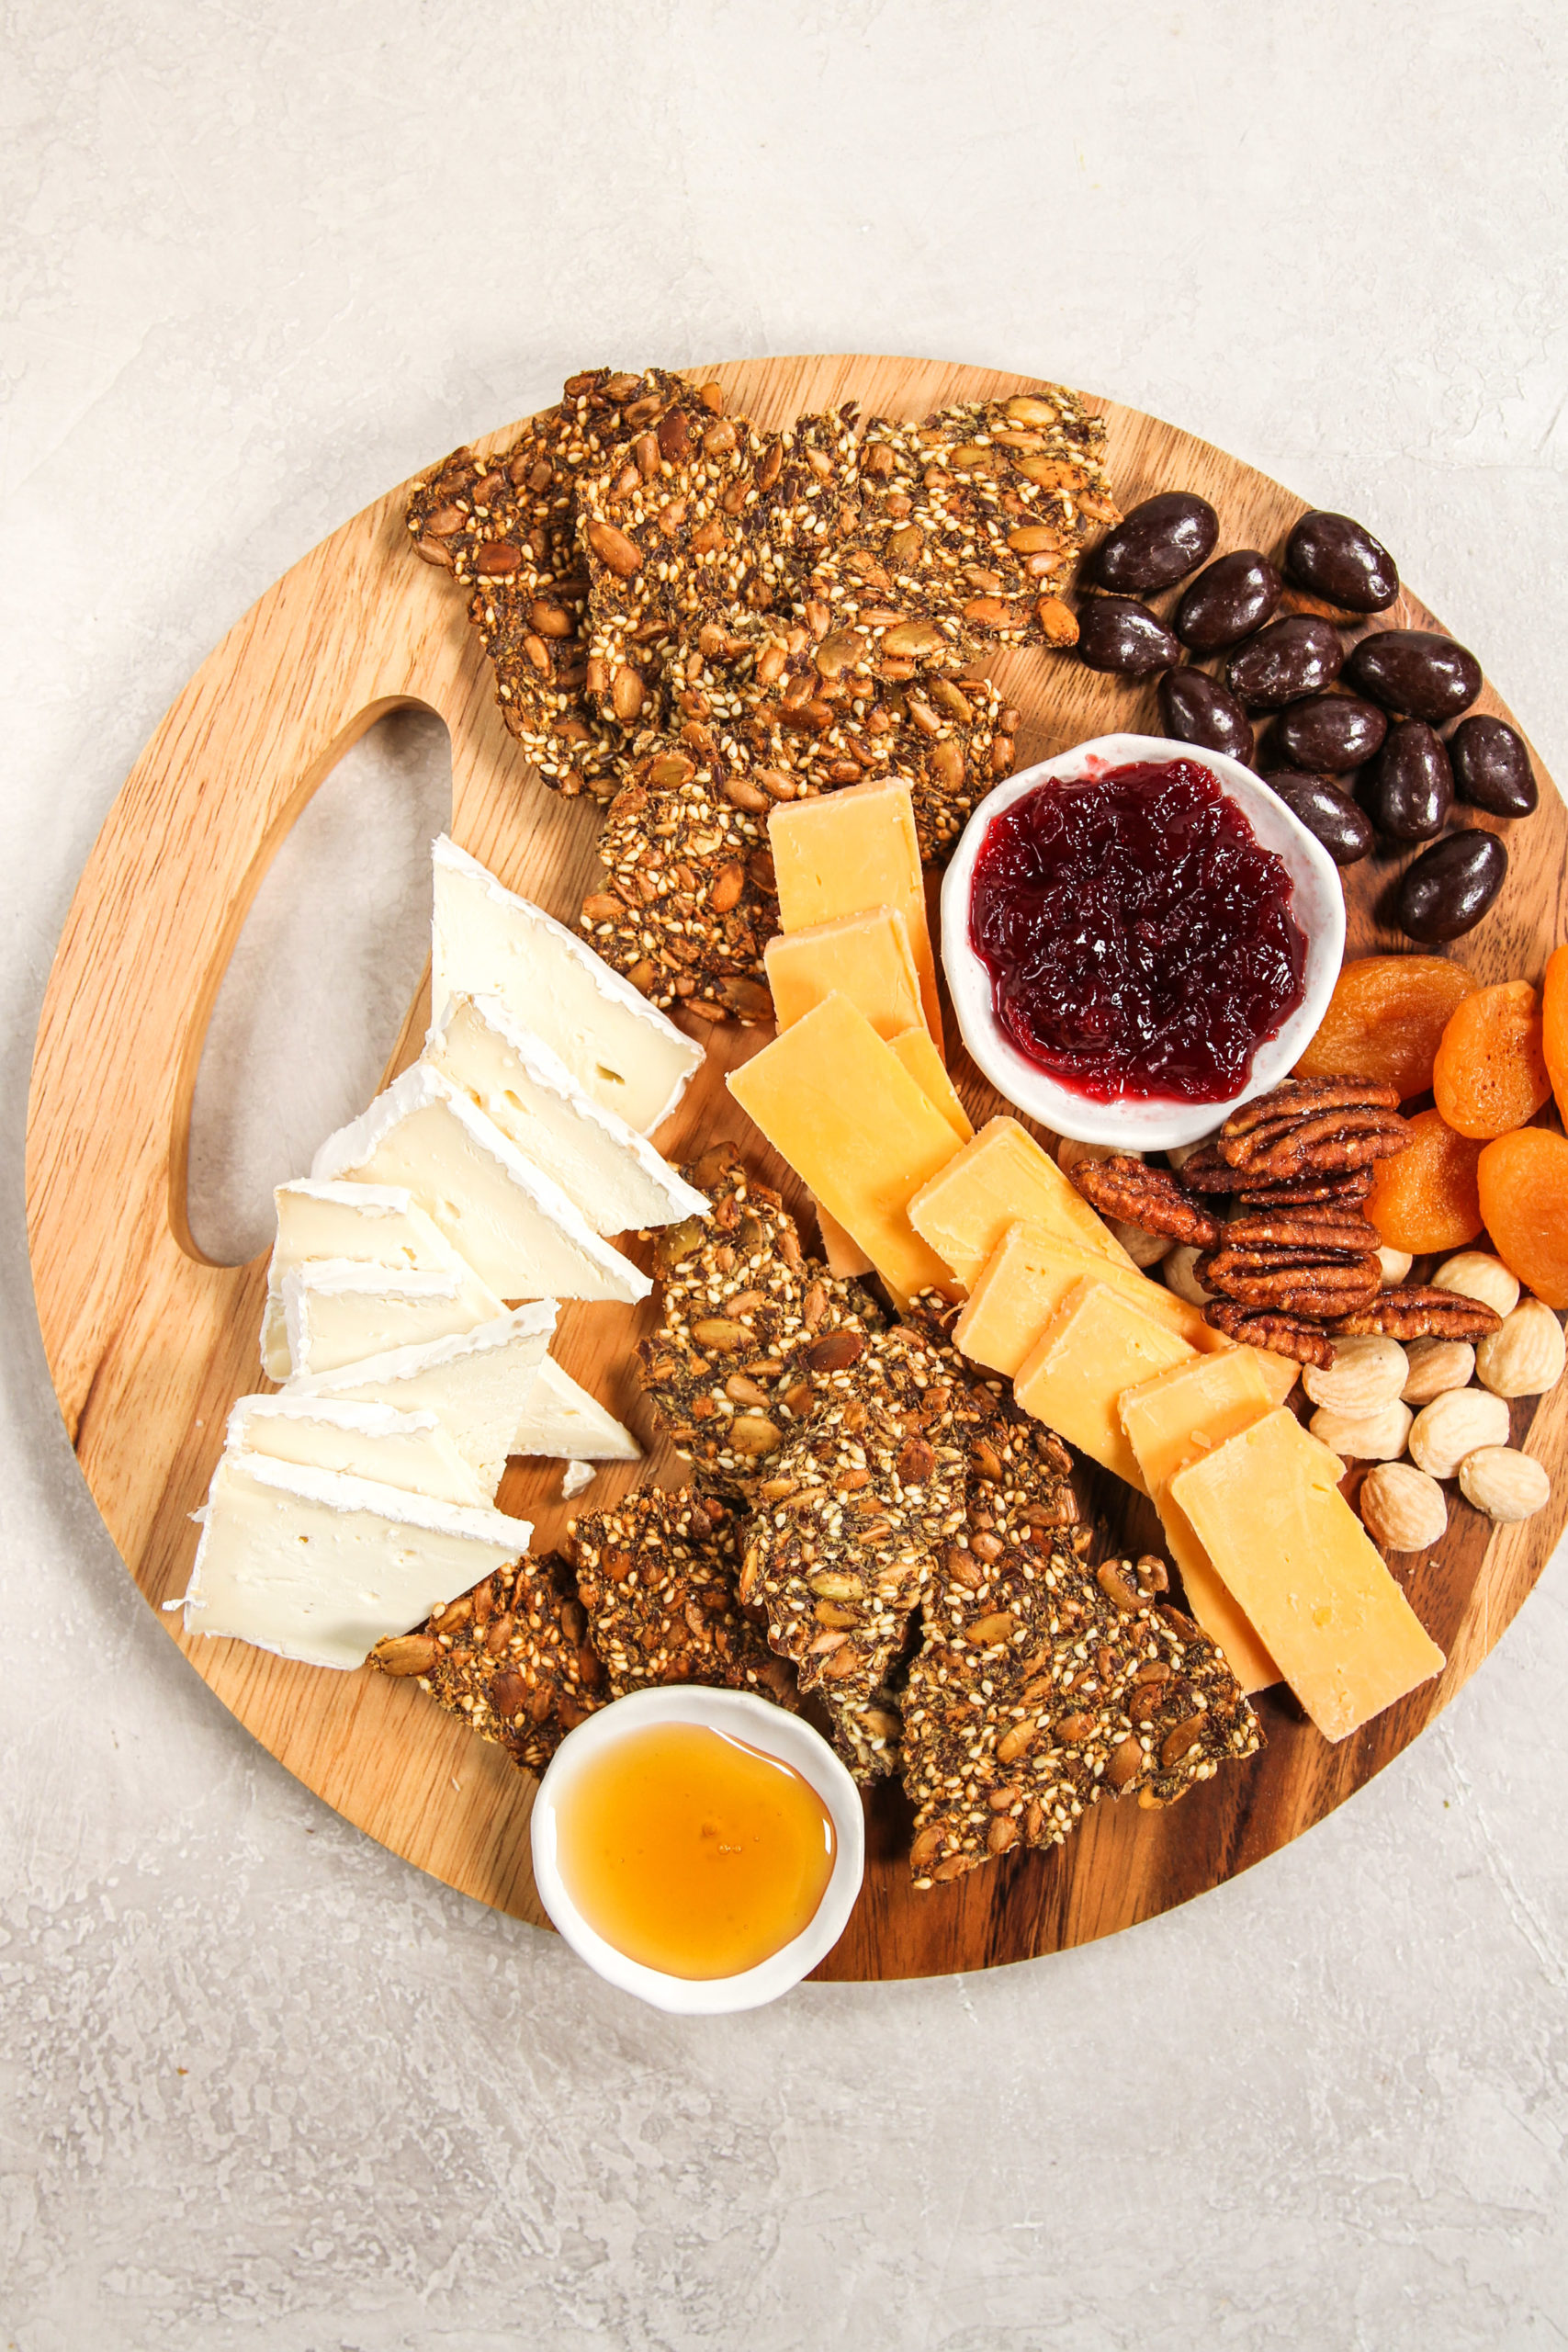 Charcuterie board with homemade seed crackers